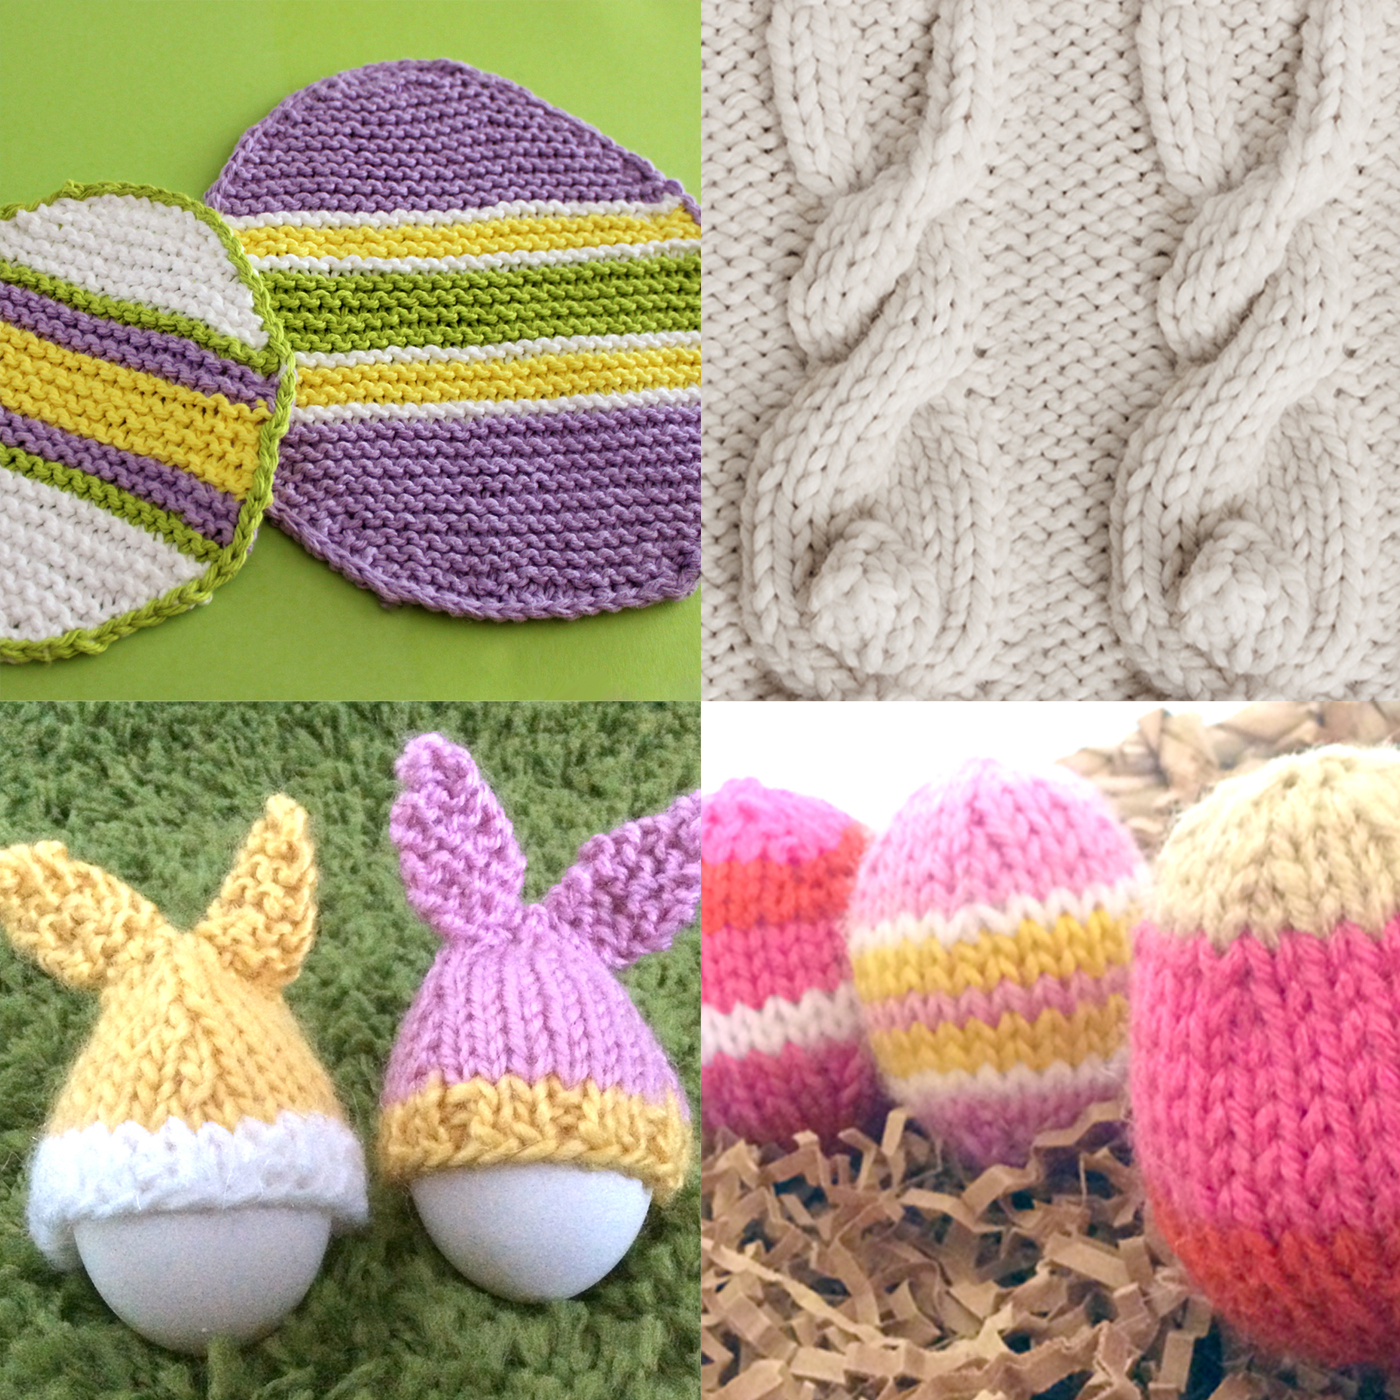 Easter Knitting Projects with Easter Egg Dishcloth, Cable Bunny Stitch, Bunny Ear Egg Cozies, and Egg Softies.